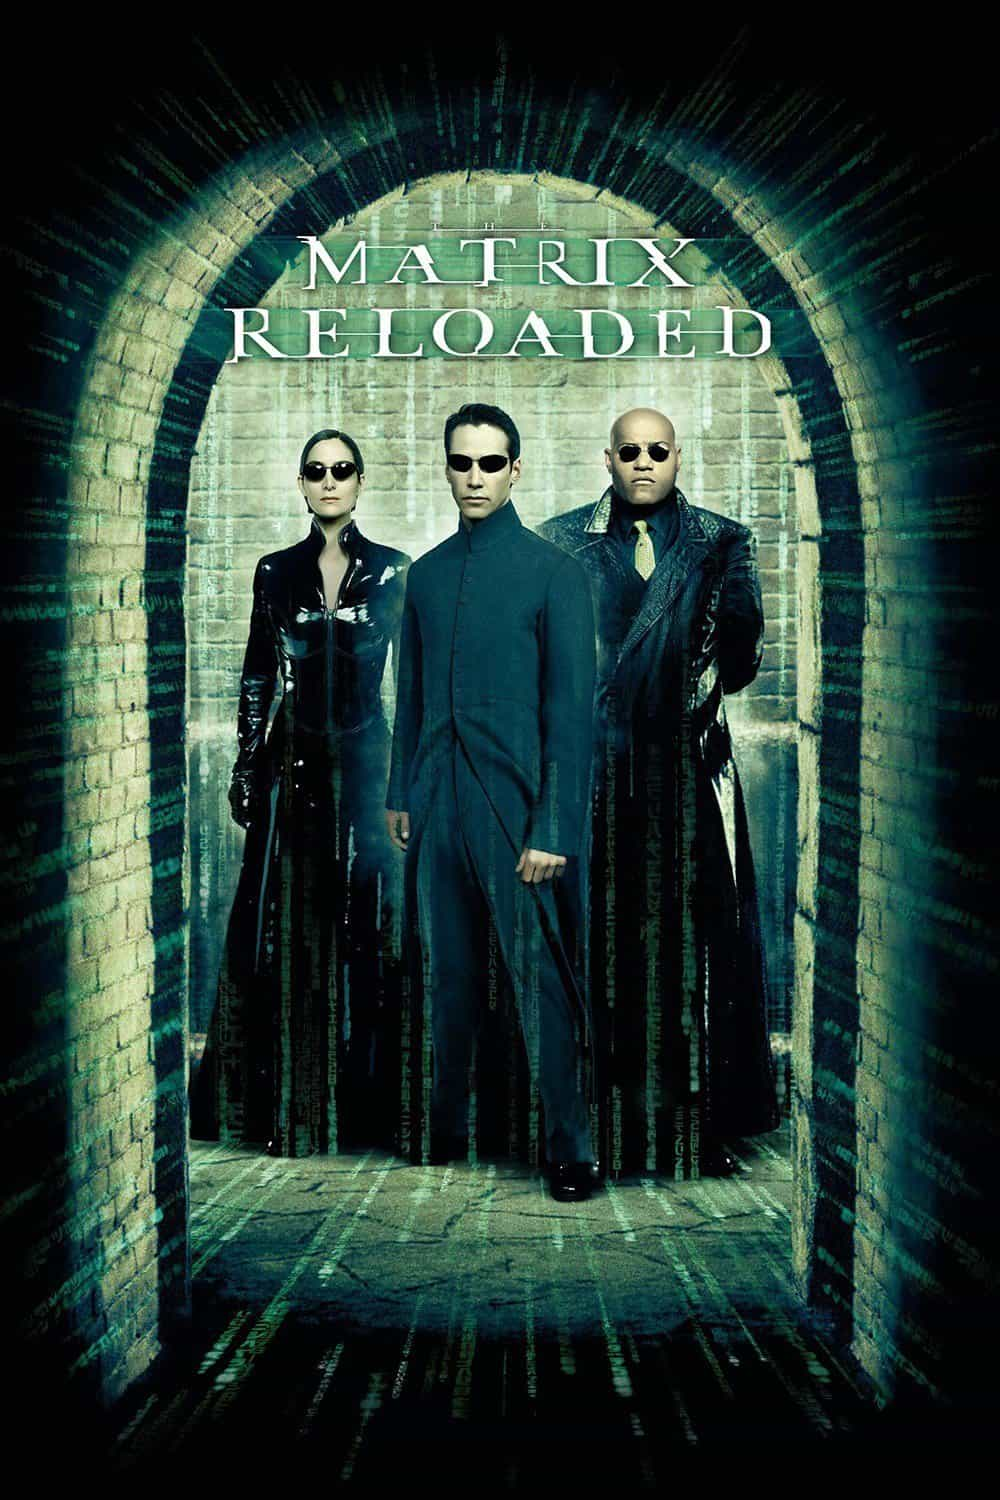 The Matrix Reloaded, 2003